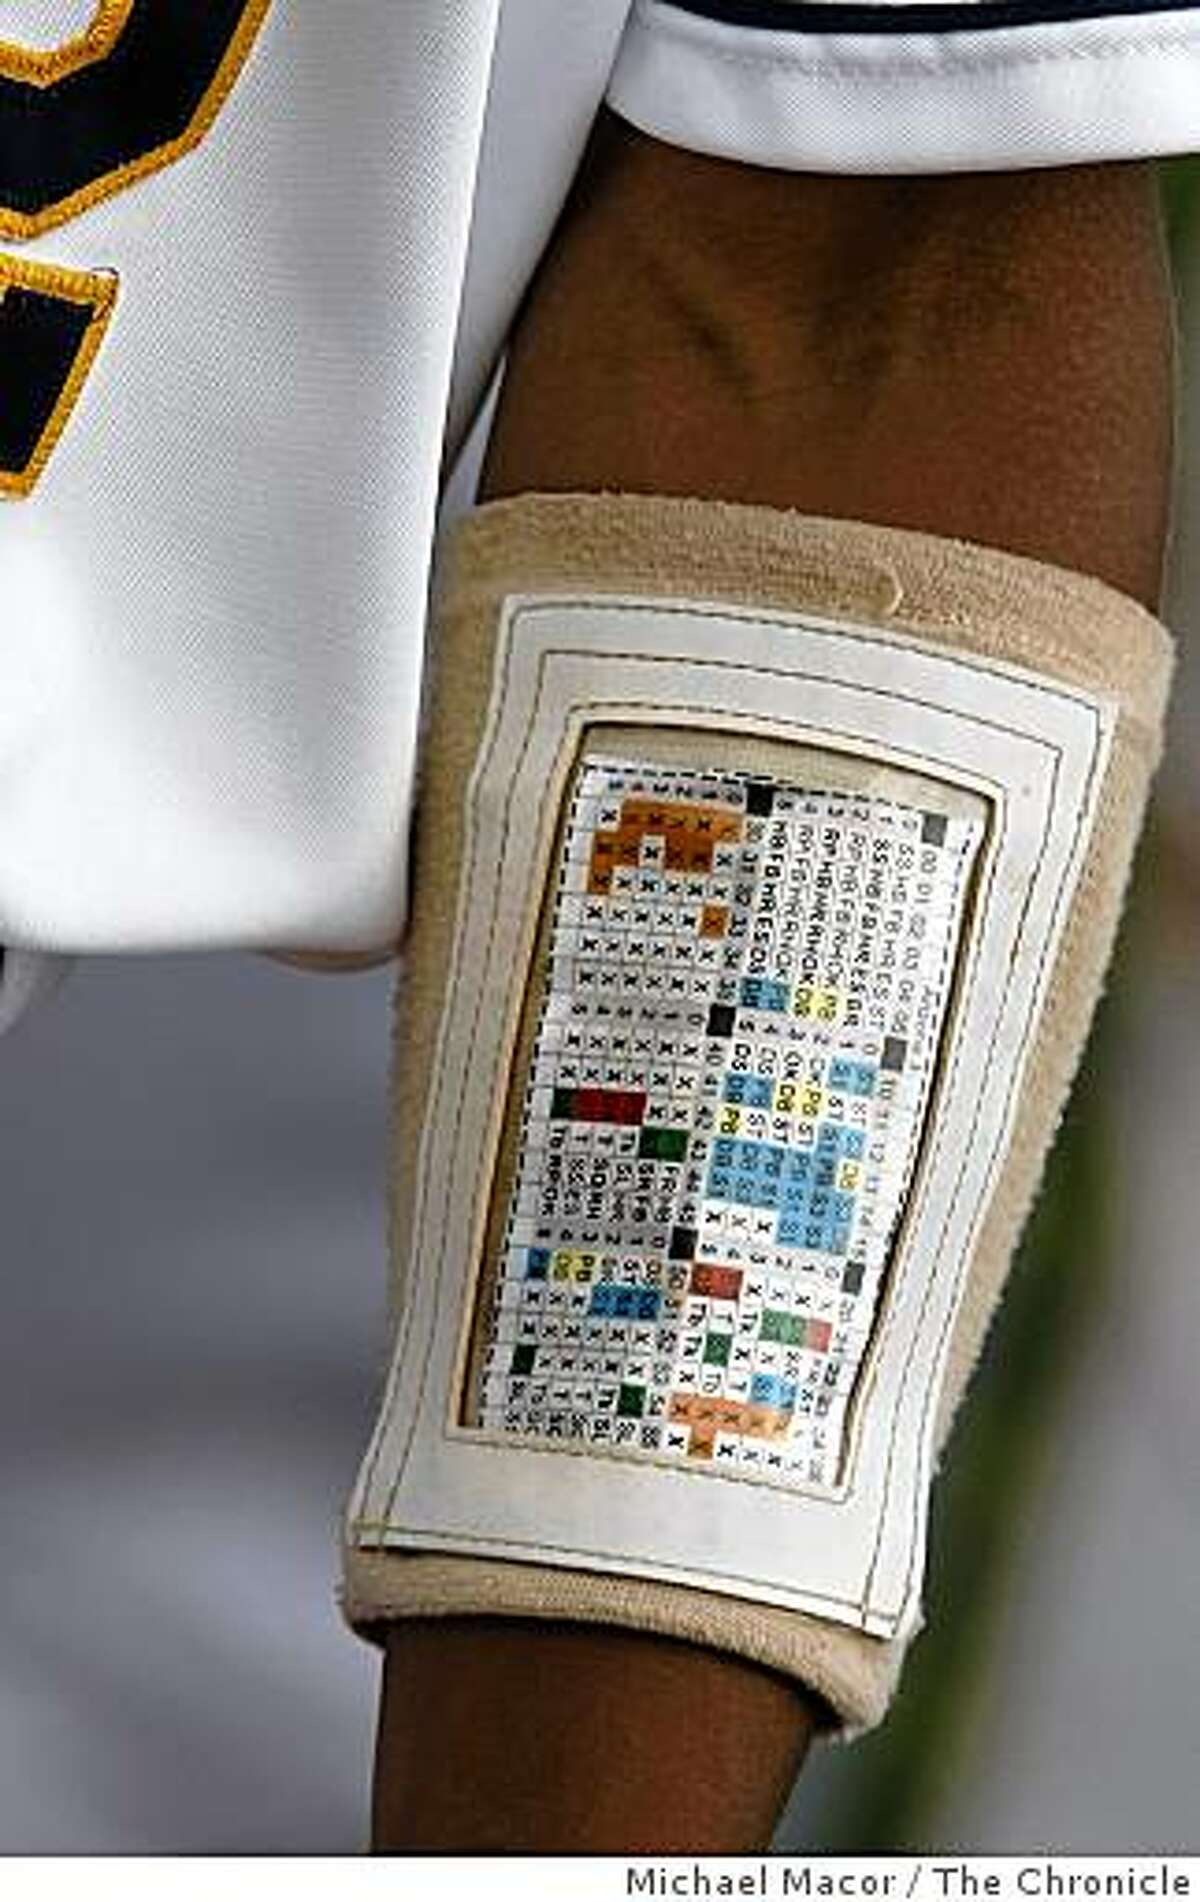 UC Berkeley player, Marcus Semien, has a list of plays attached to his arm during a game against UC Davis on Tuesday May, 5, 2009 in Berkeley, Calif. The team uses a numeric system to deliver plays to the batters.